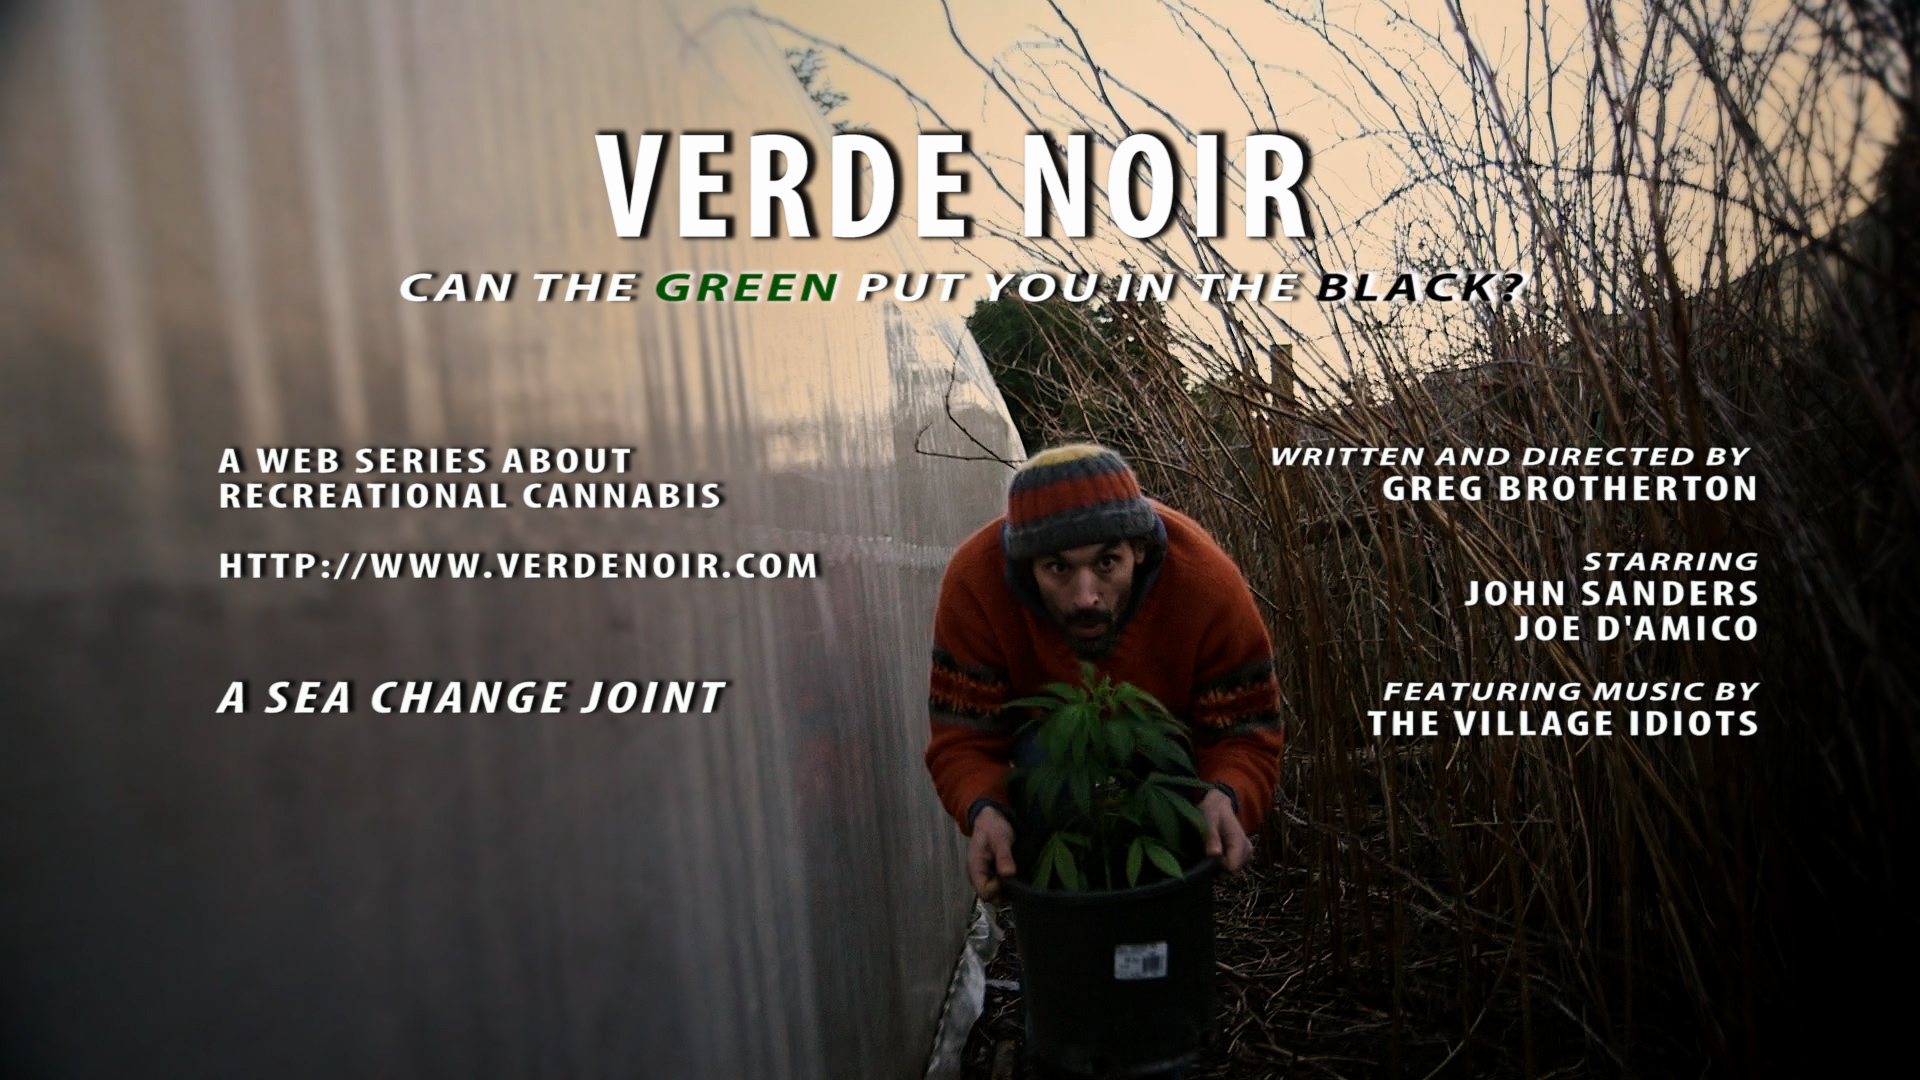 Verde Noir mixes documentary and narrative techniques to tell the story of recreational cannabis in Washington through the efforts of two black market growers to go legal with I-502. We pull back the curtain on legalized marijuana.